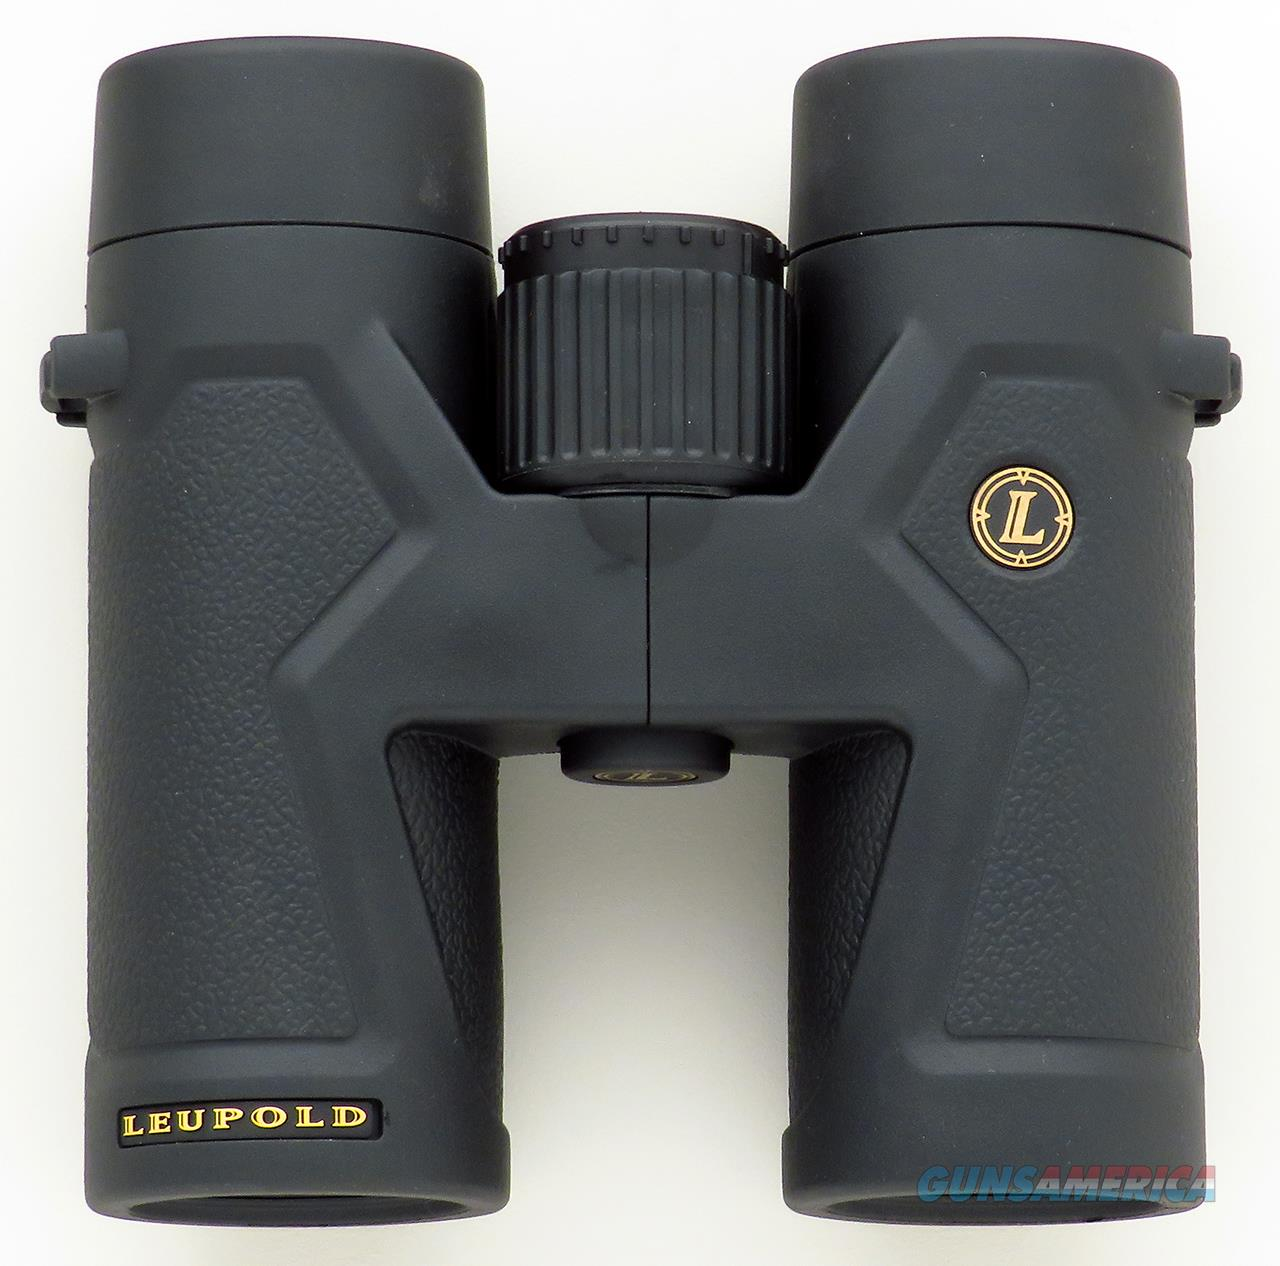 Leupold BX-3 Mohave 8x32mm binoculars, case, box and papers  Non-Guns > Scopes/Mounts/Rings & Optics > Non-Scope Optics > Binoculars